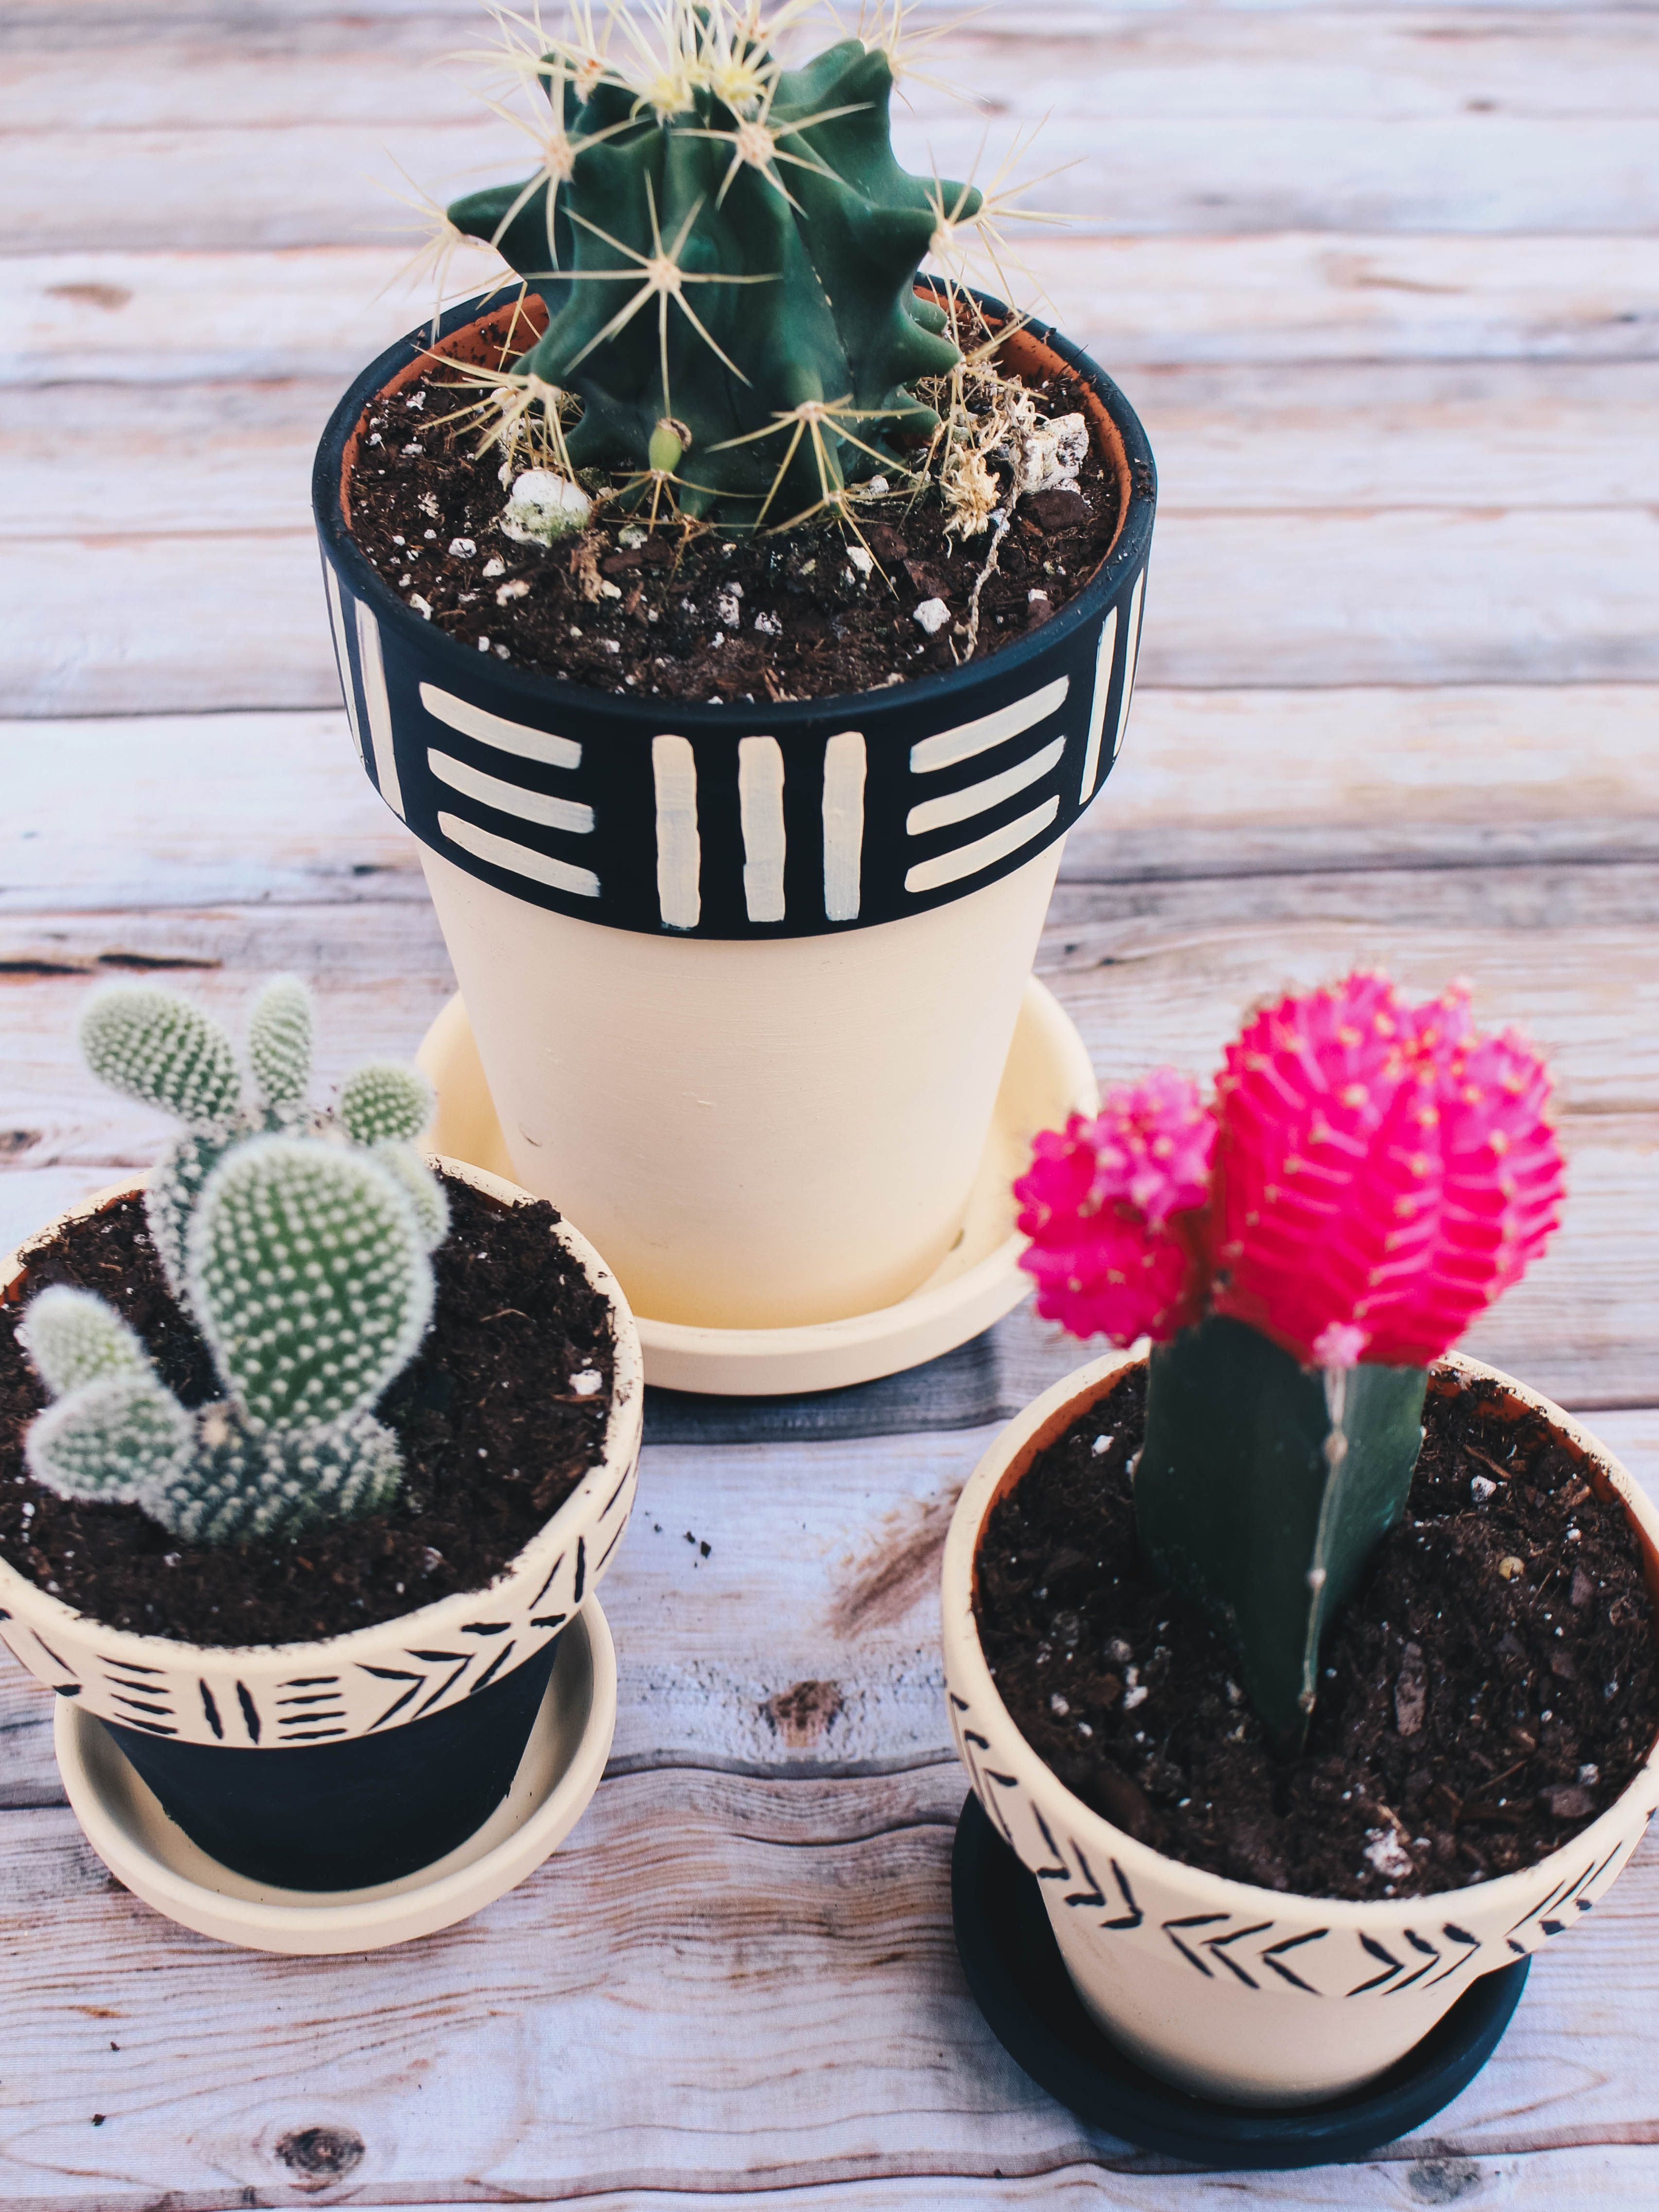 Diy Painted Pots With A Punny Hidden Mesage Yeah She Tried That